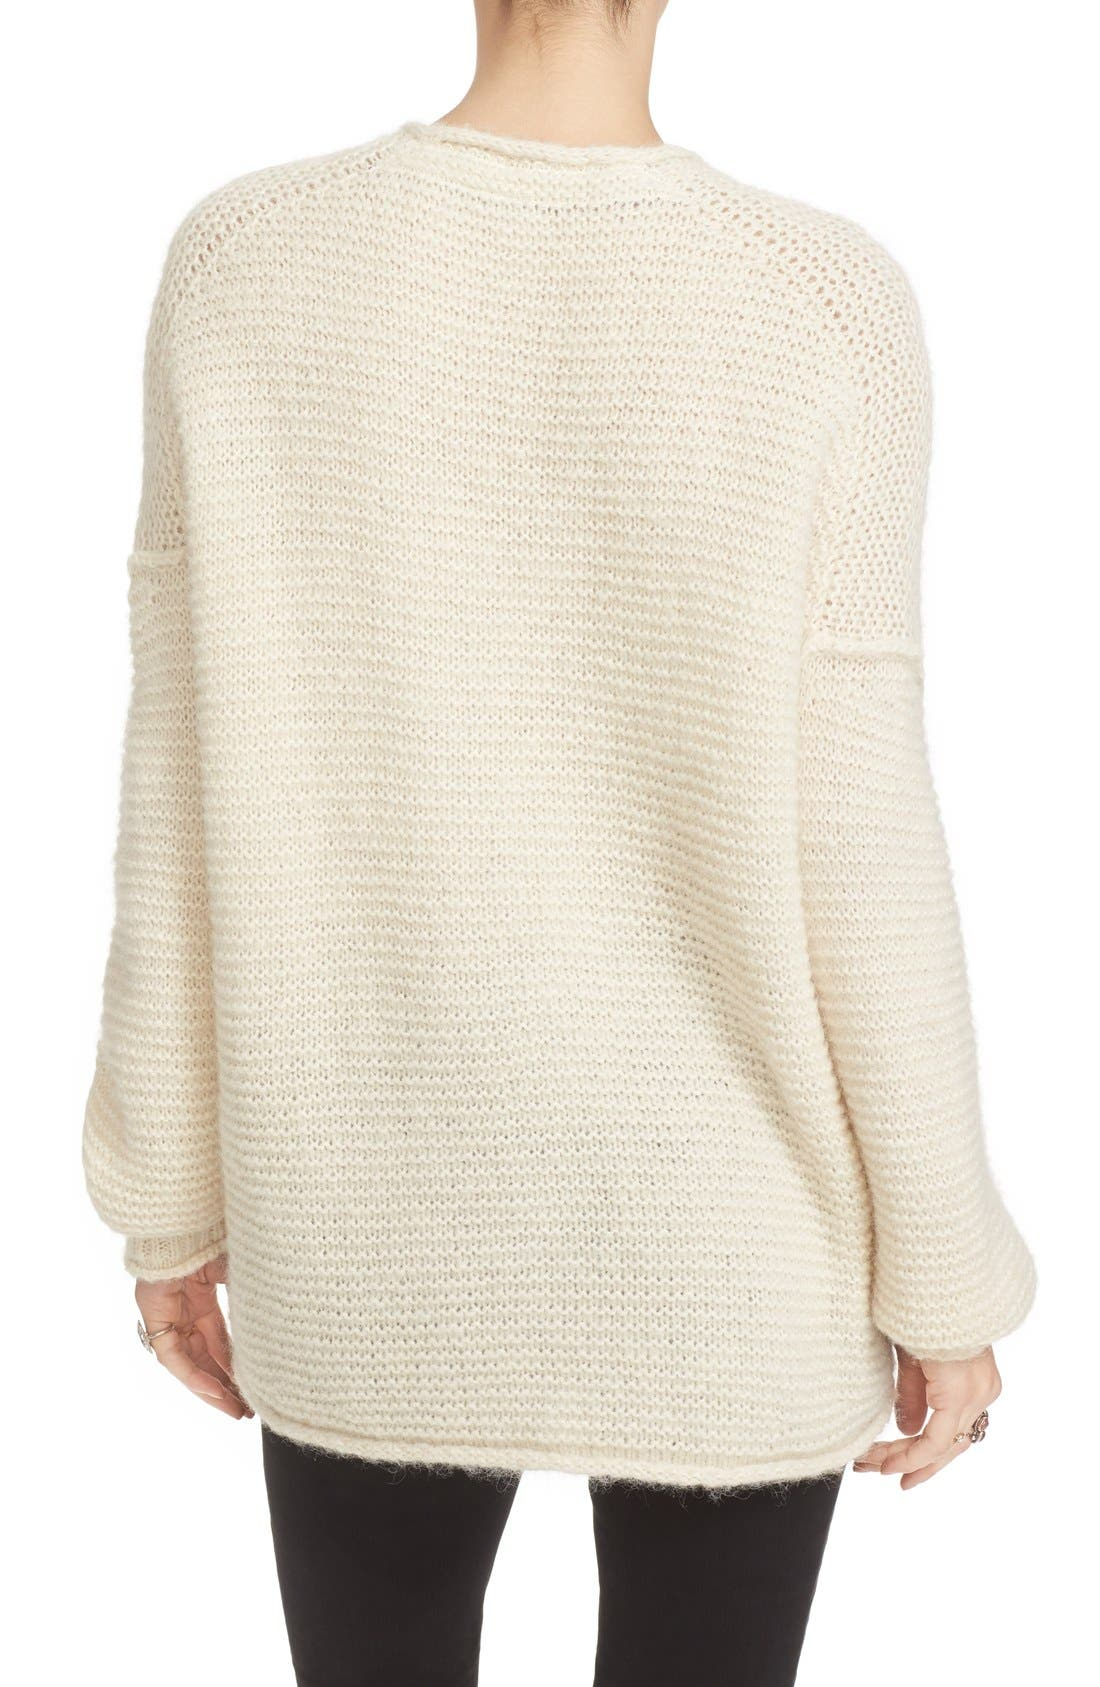 All Mine Sweater,                             Alternate thumbnail 2, color,                             Ivory